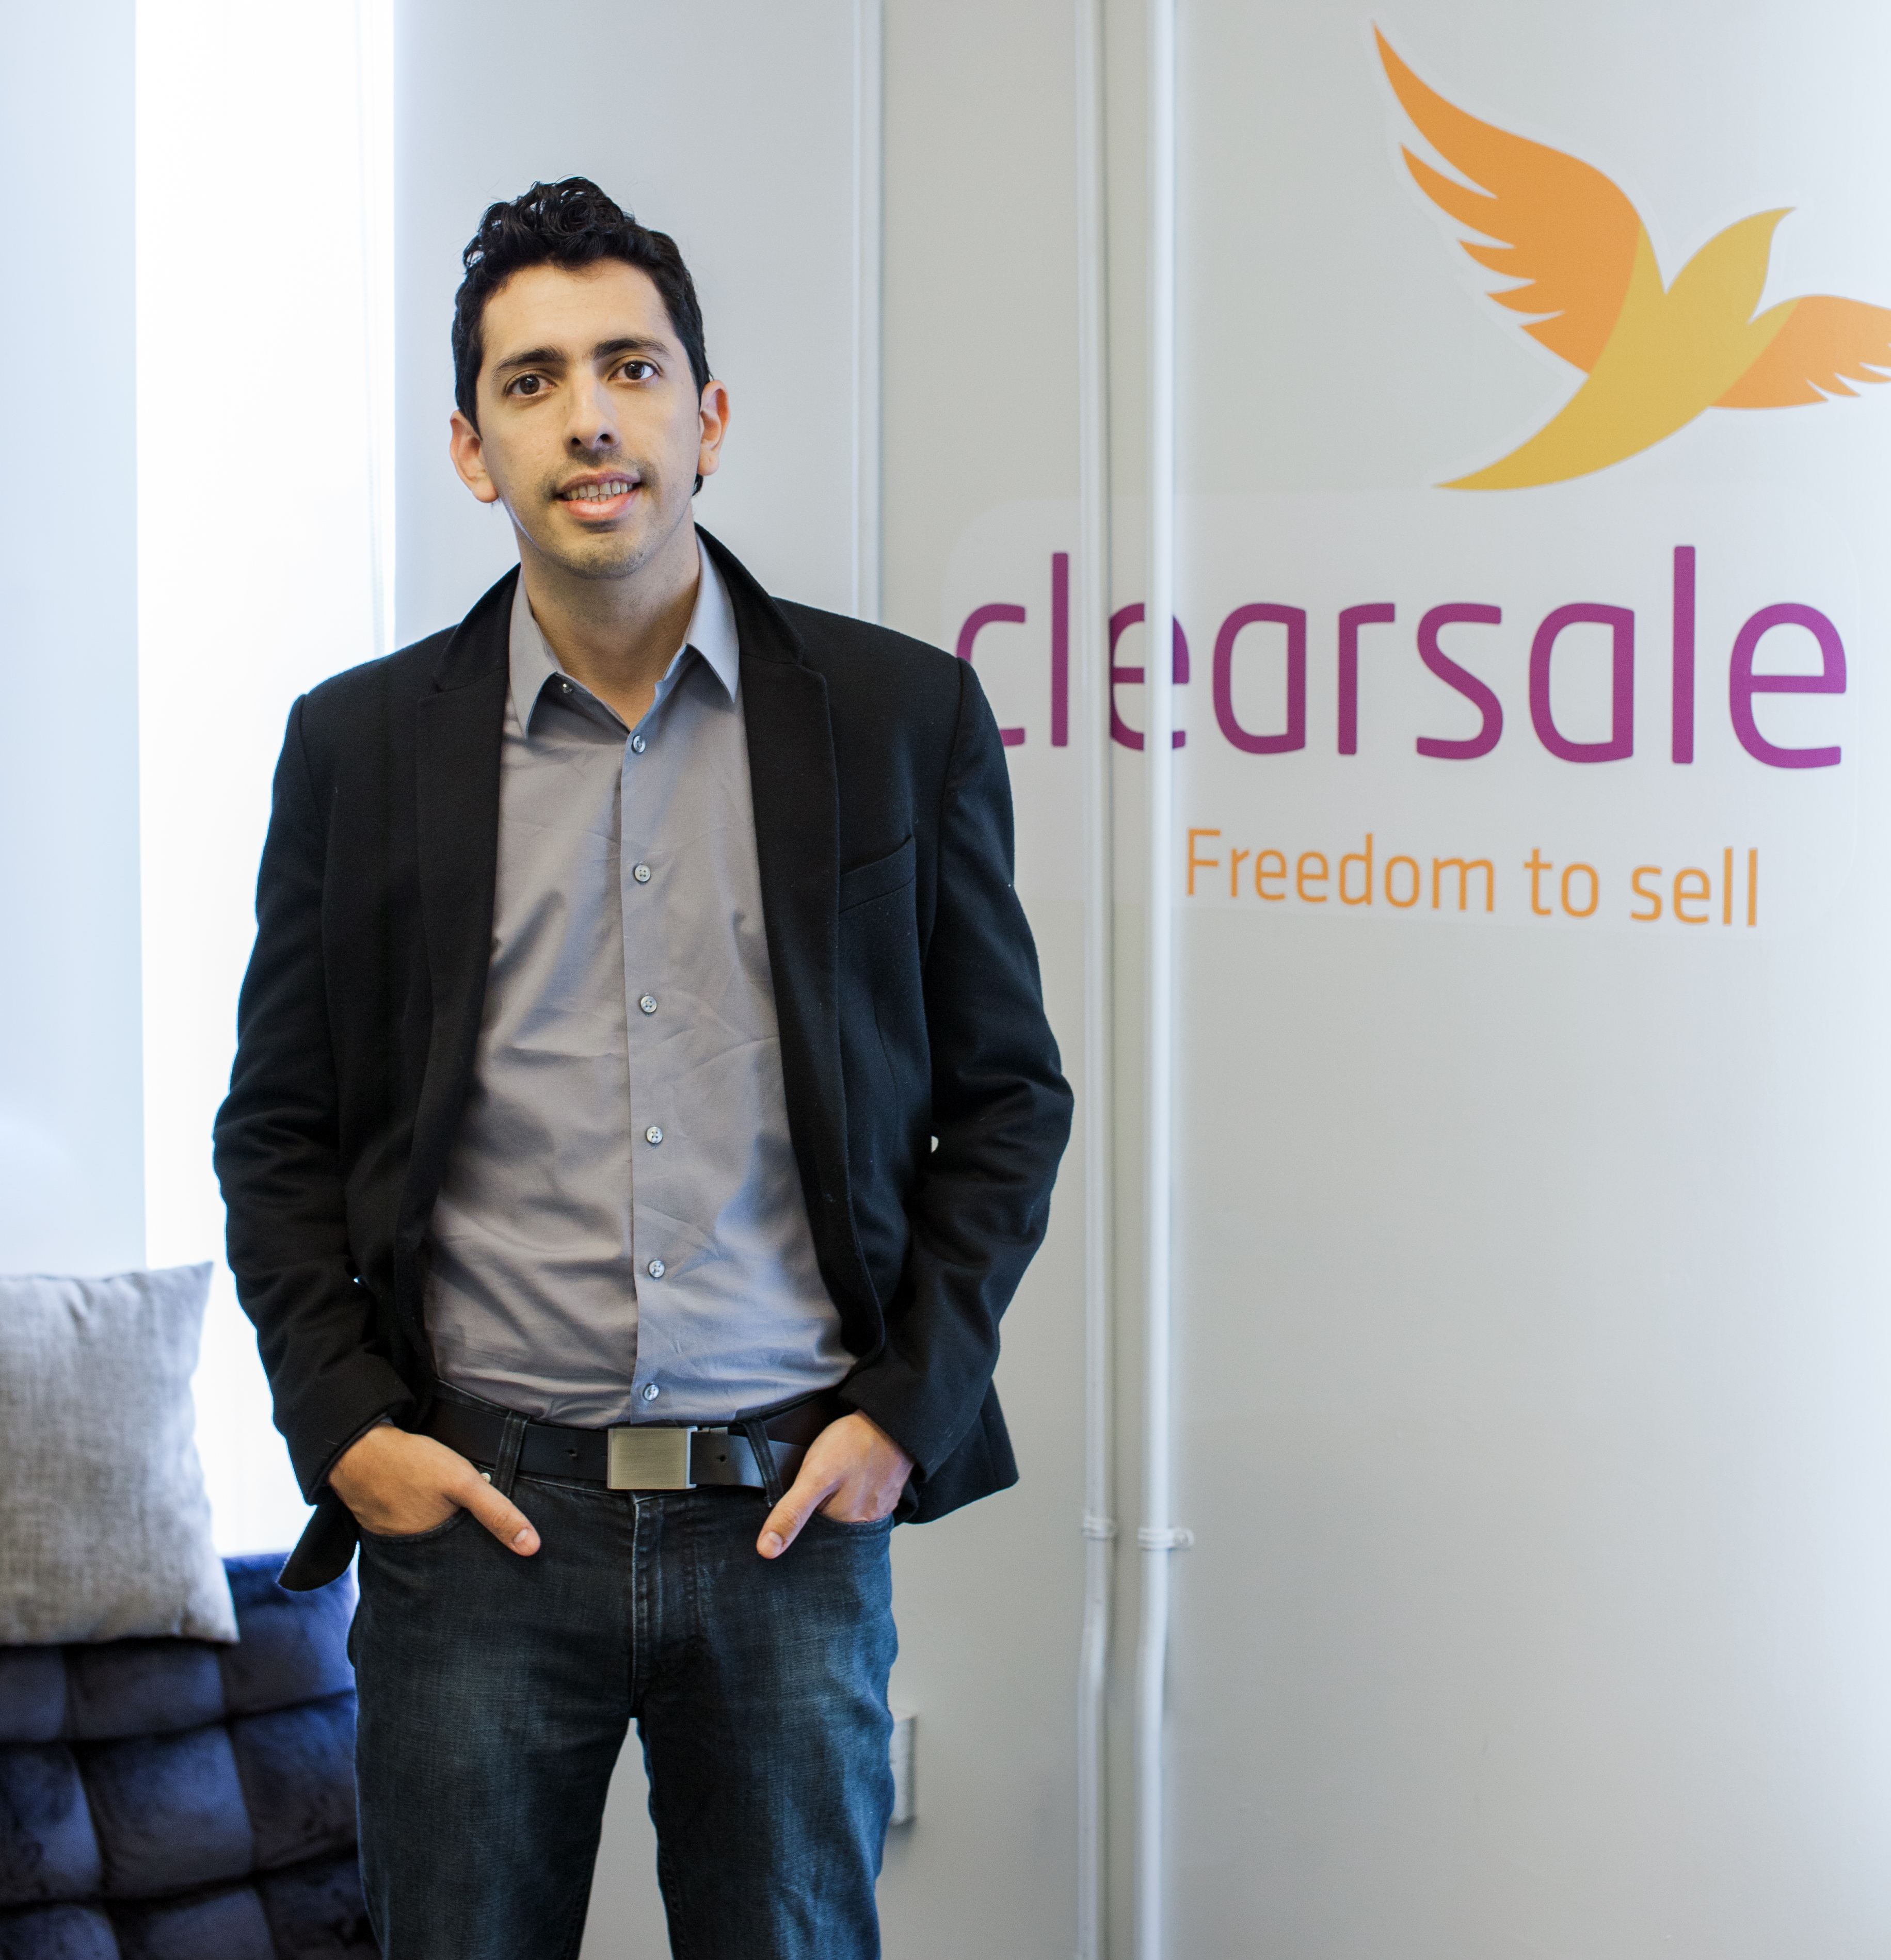 Clearsale CEO Rafael in jeans and sports jacket